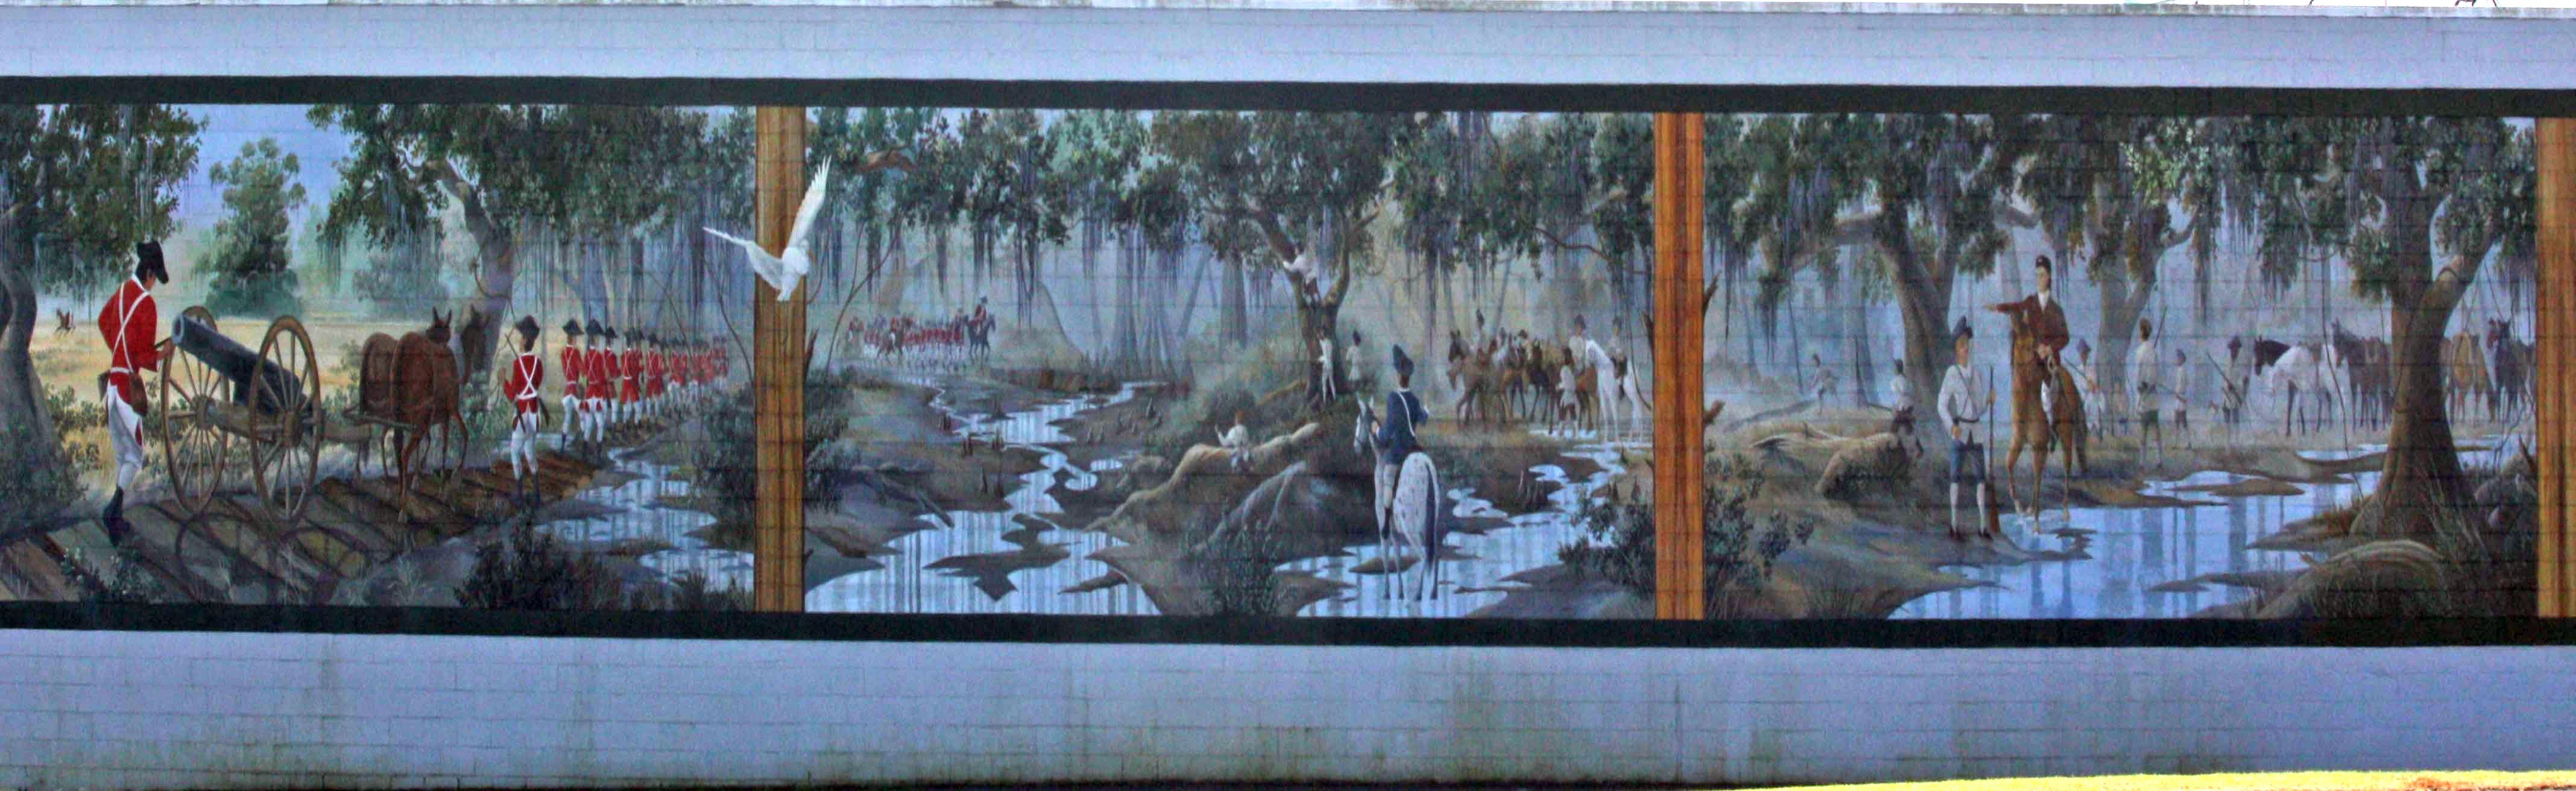 Revolutionary Skirmish Near Wyboo Swamp Mural at the IGA in Manning